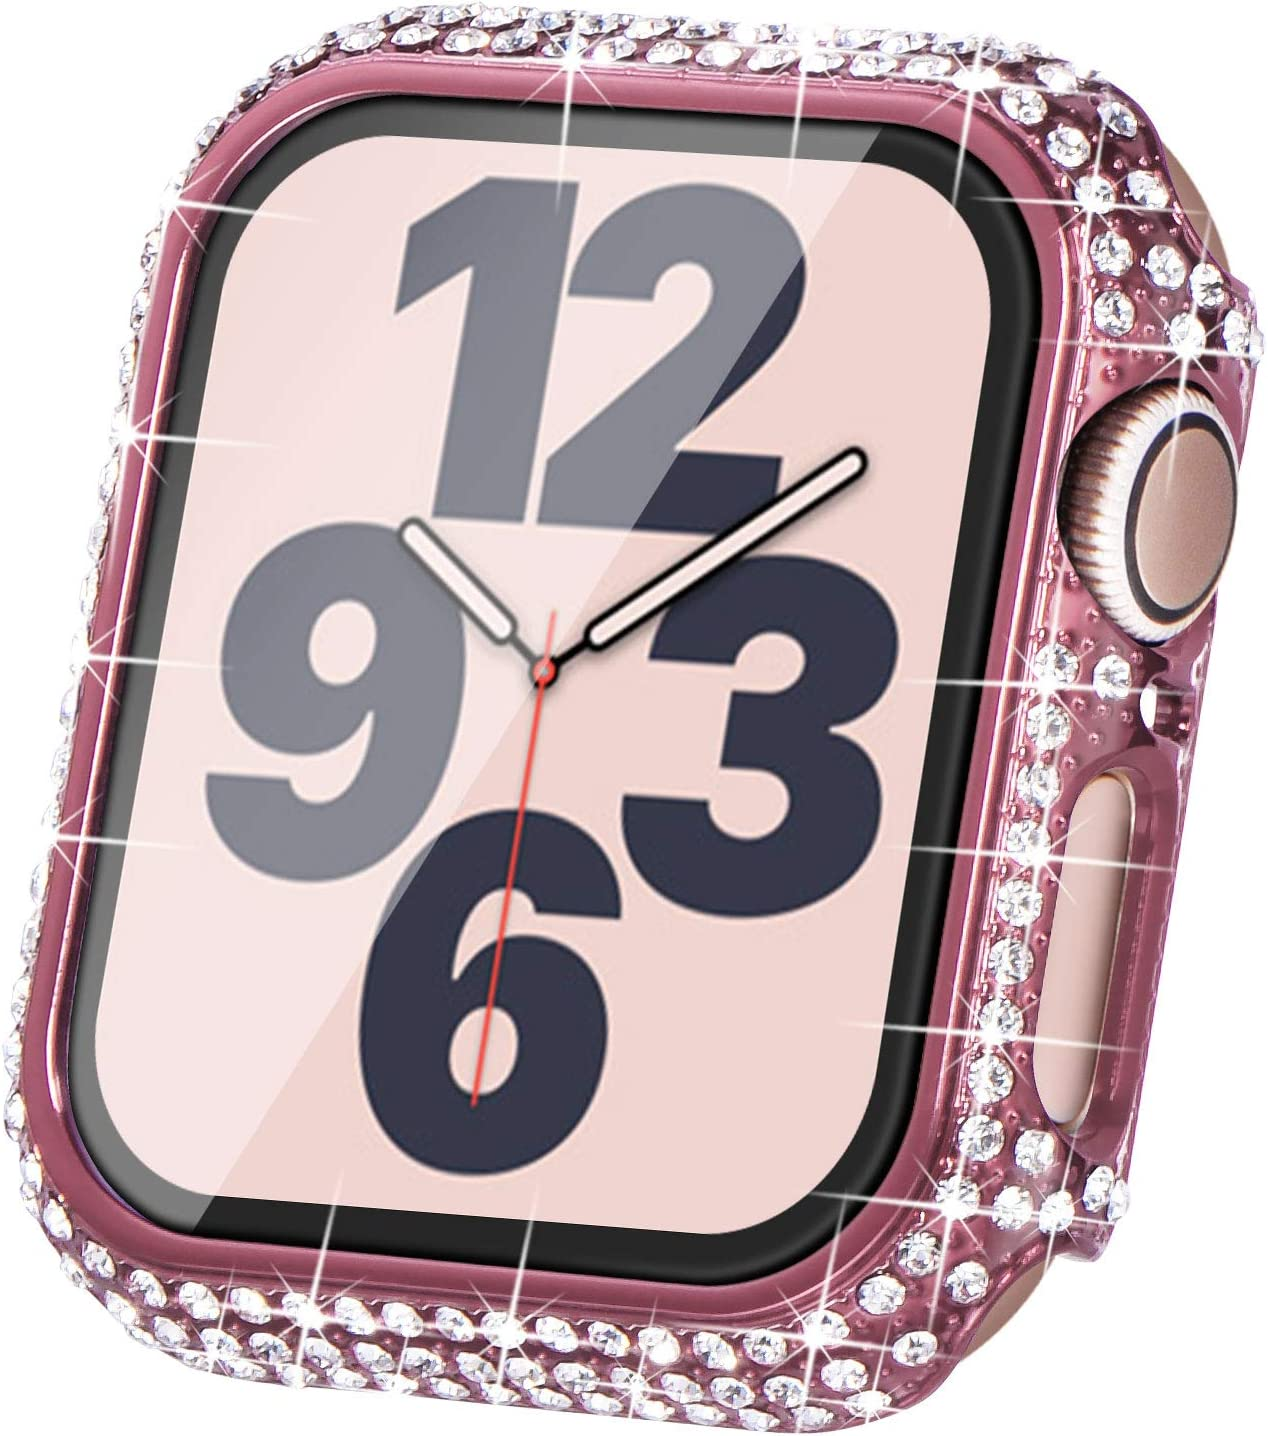 Surace Compatible with Apple Watch Case 40mm for Apple Watch Series 6/5/4/3/2/1, Bling Cases with Over 200 Crystal Diamond Protective Cover Bumper for 38mm 40mm 42mm 44mm (40mm, Pink)